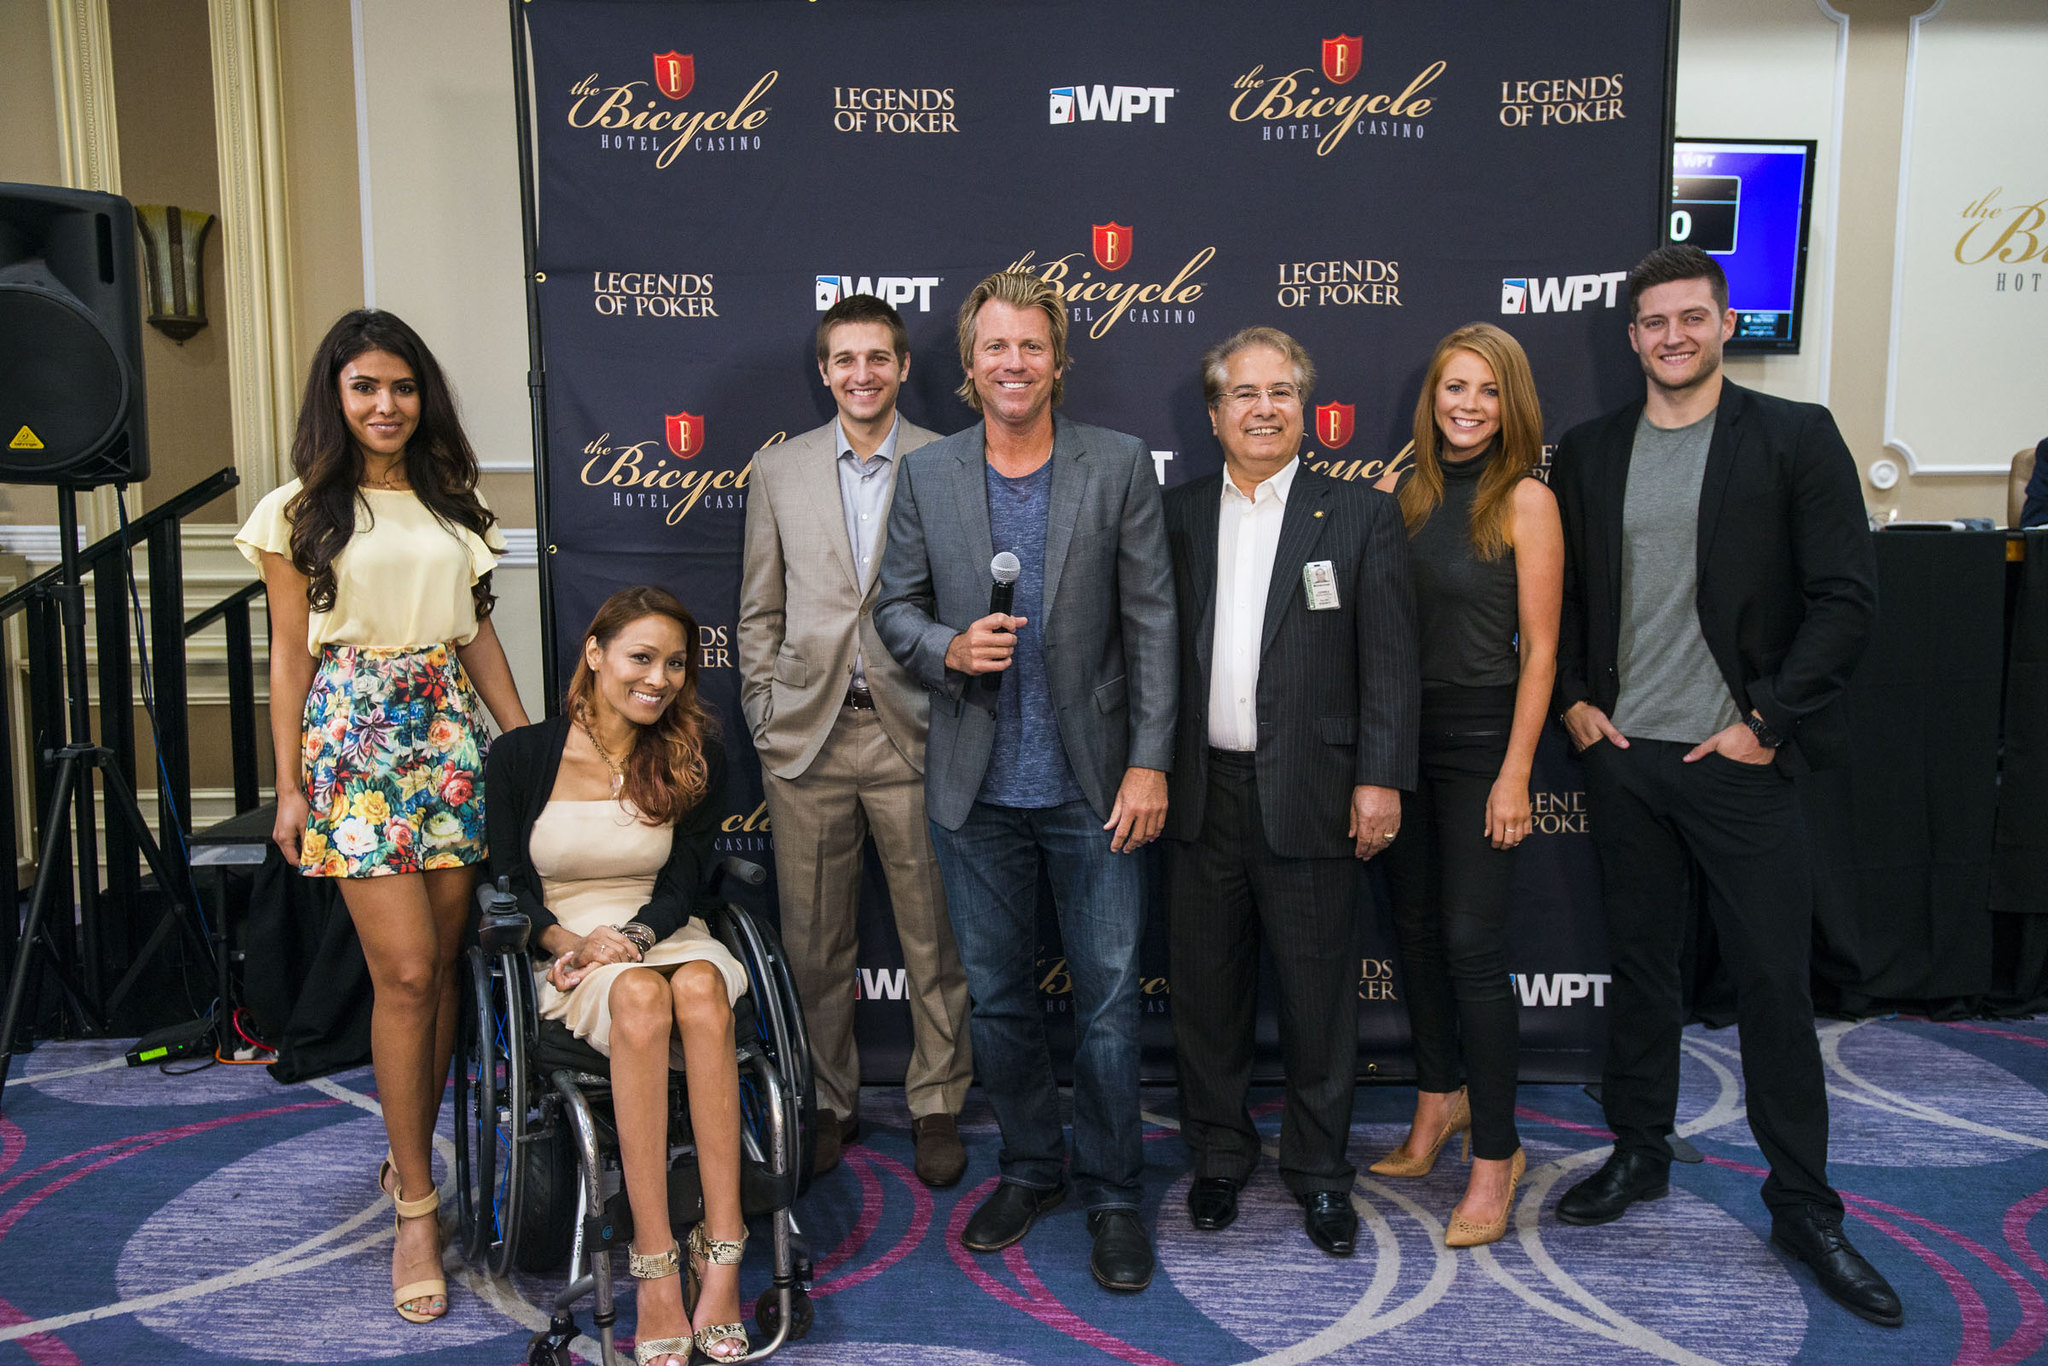 WPT Legends of Poker Season 18